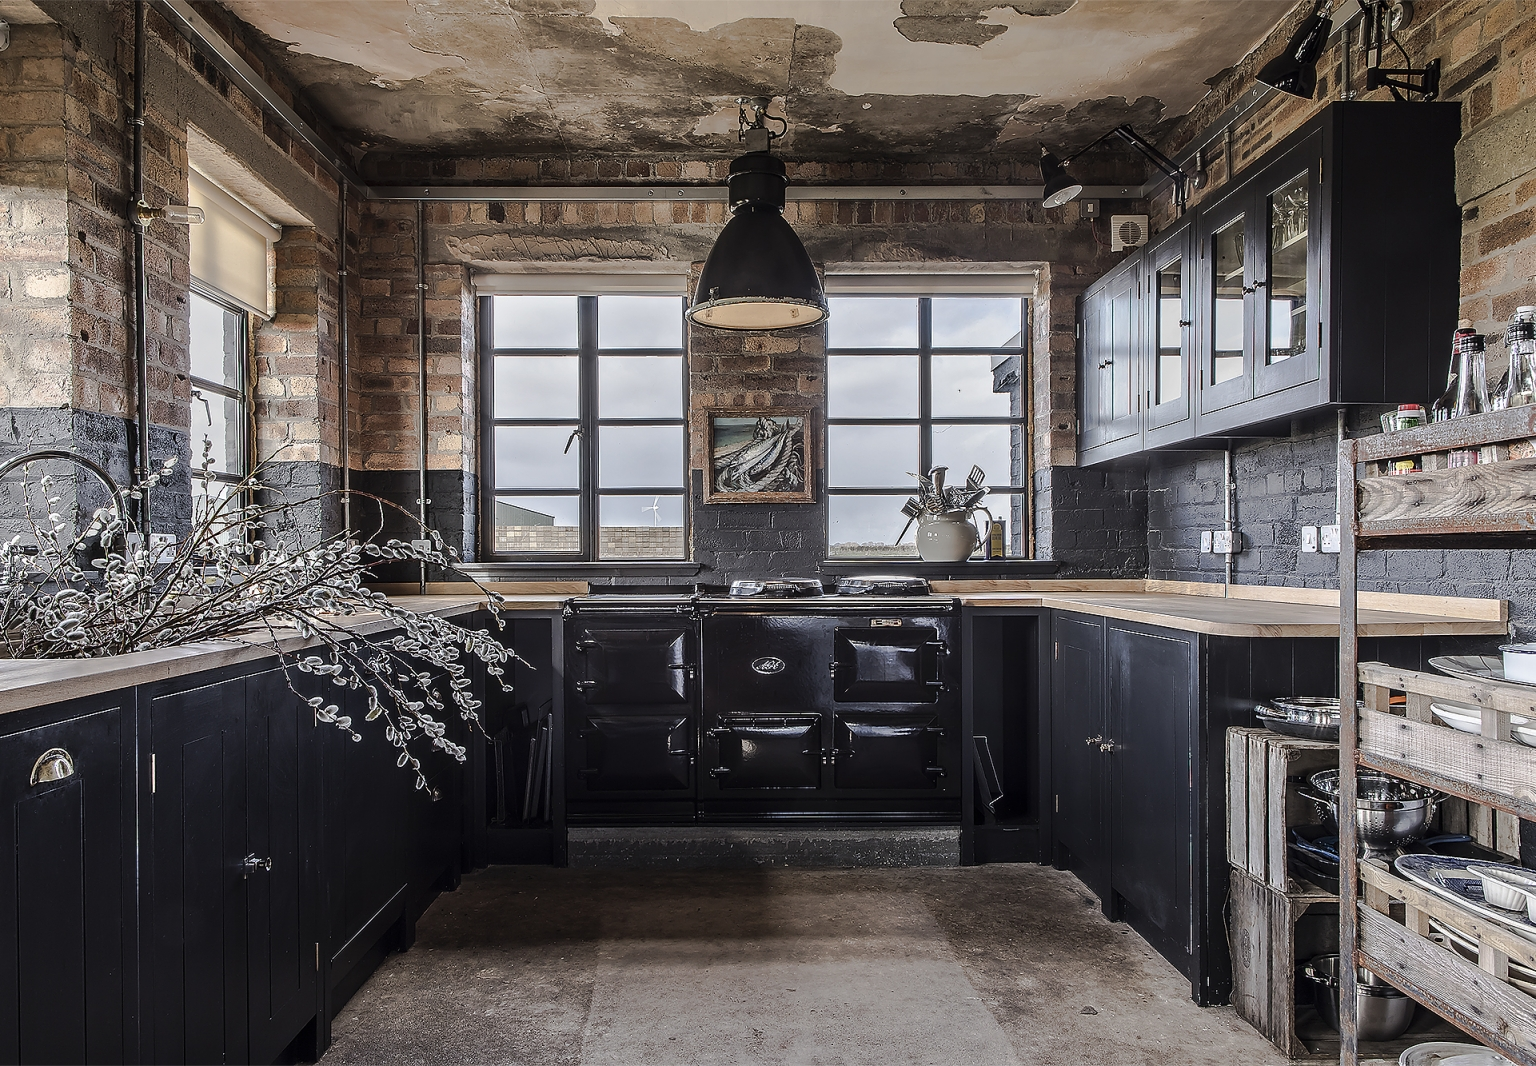 Kitchen of the Week: A Noir Canteen in a Repurposed WWII Control Tower